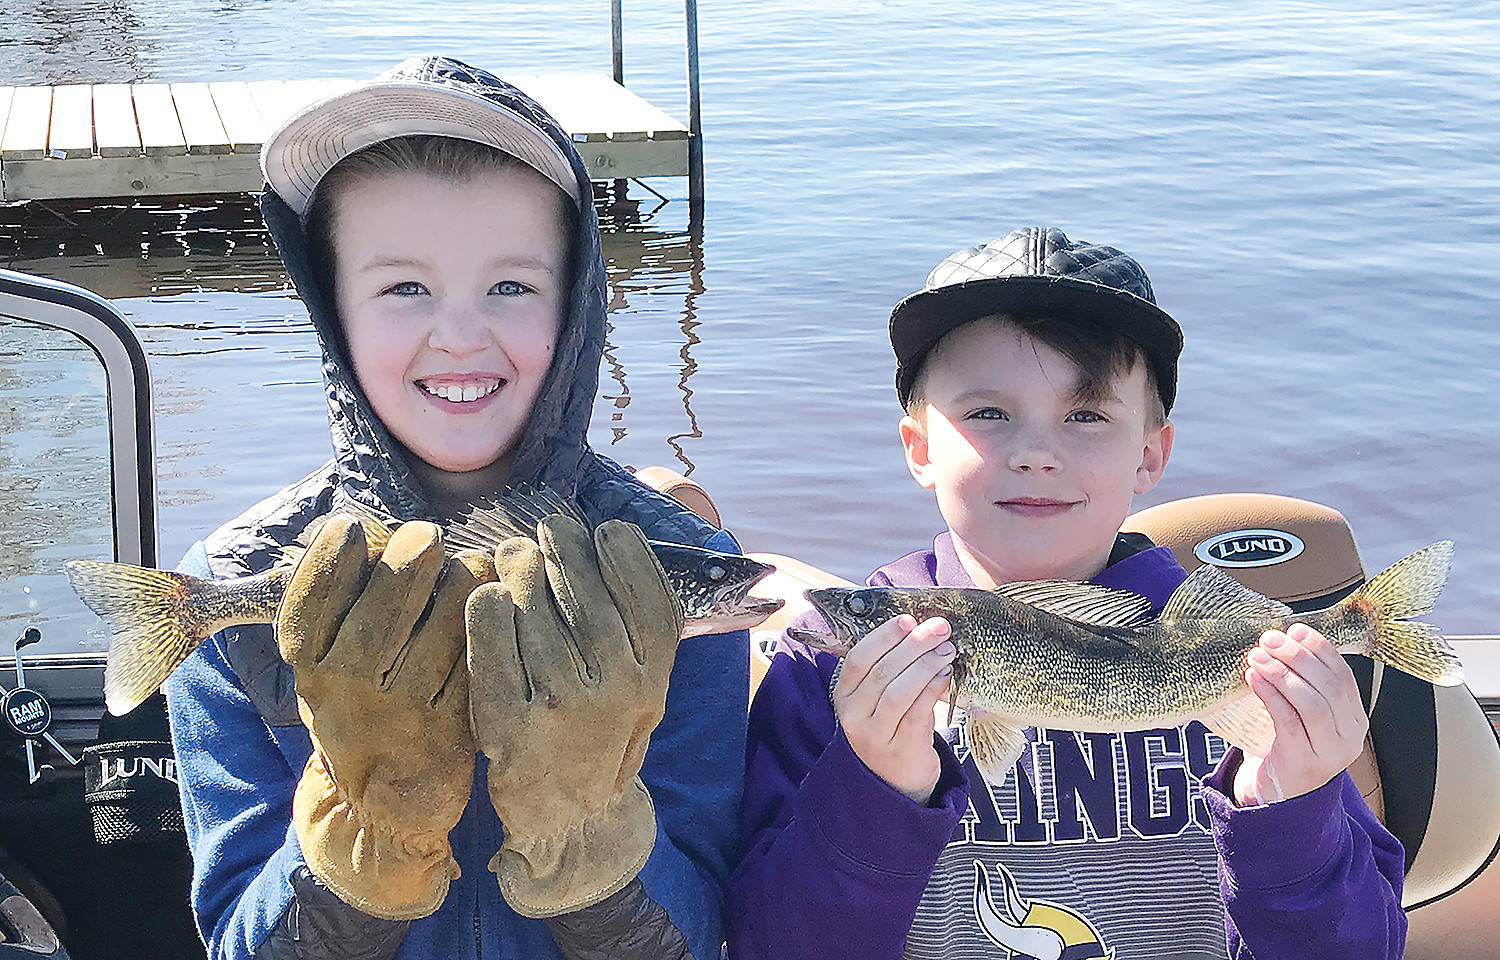 Grant and Jack Aysta, of Eveleth, were having a great time fishing with their dad and his friends on Lake Vermilion.